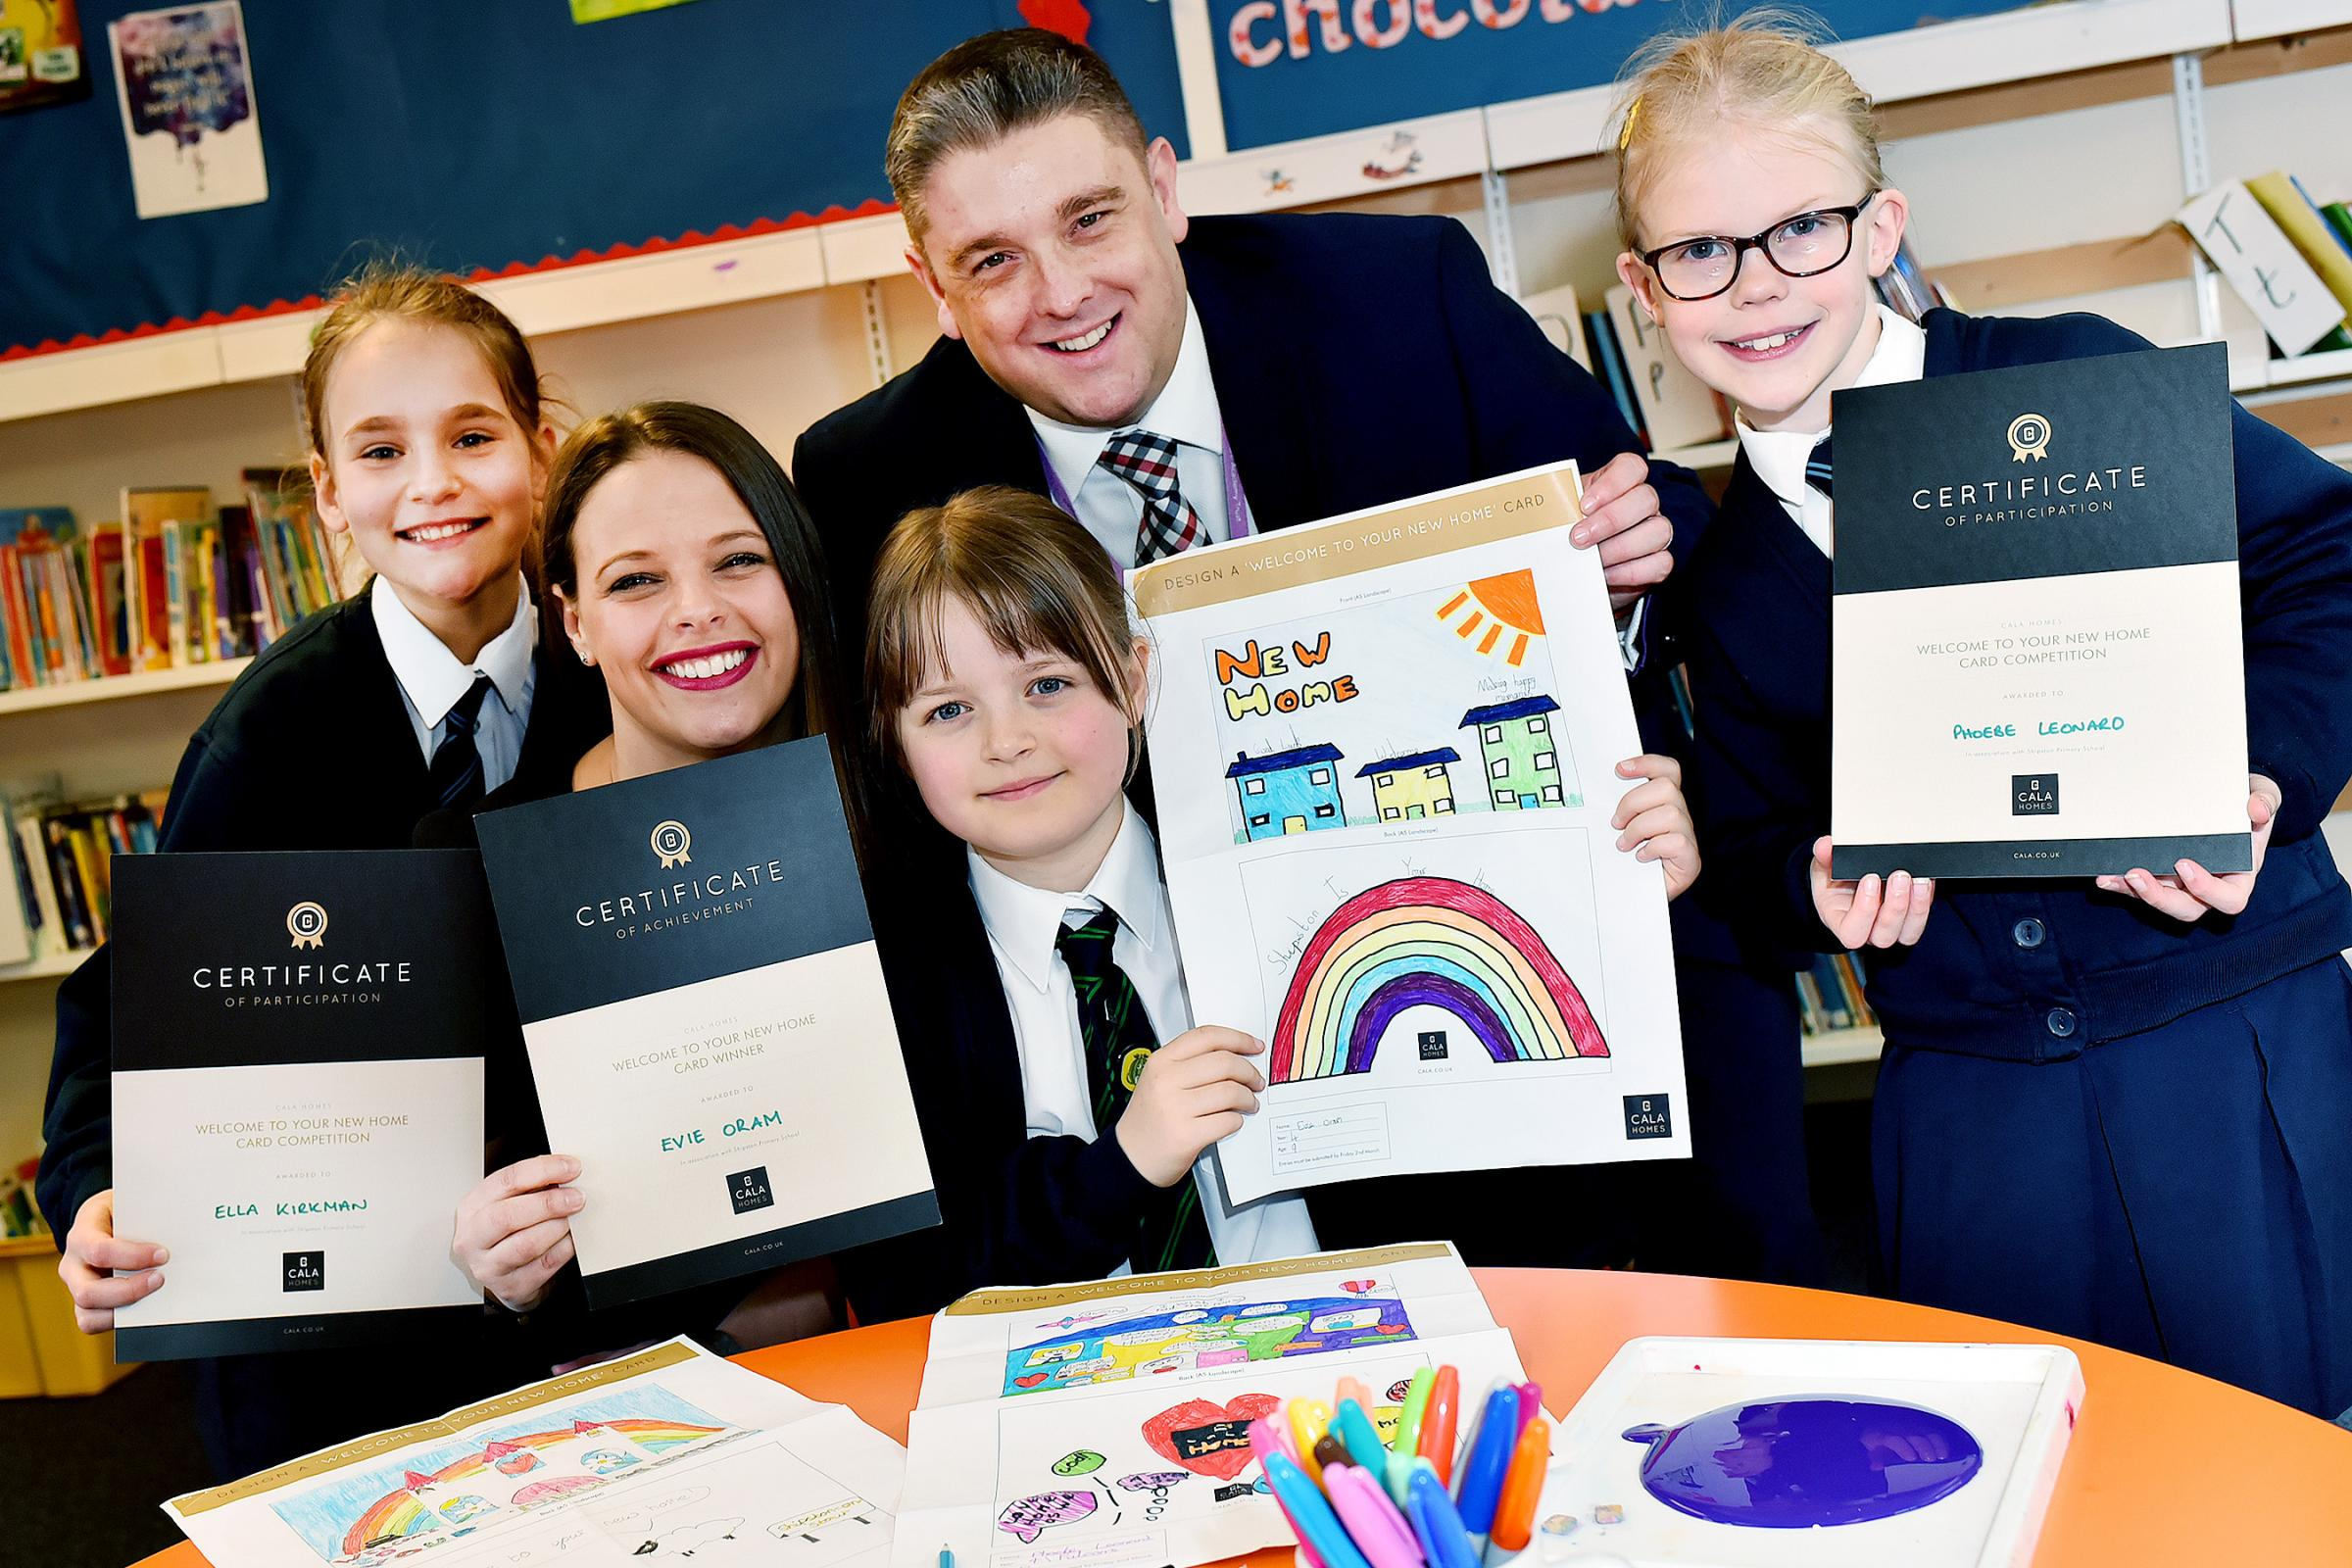 WINNERS: Prizes presented by Hannah Bailey from CALA Homes with Headteacher, Christian Hilton. Winner Evie Oram aged 9 (centre) and runners up, Ella Kirkman aged 10 and Phoebe Leonard, aged 8.